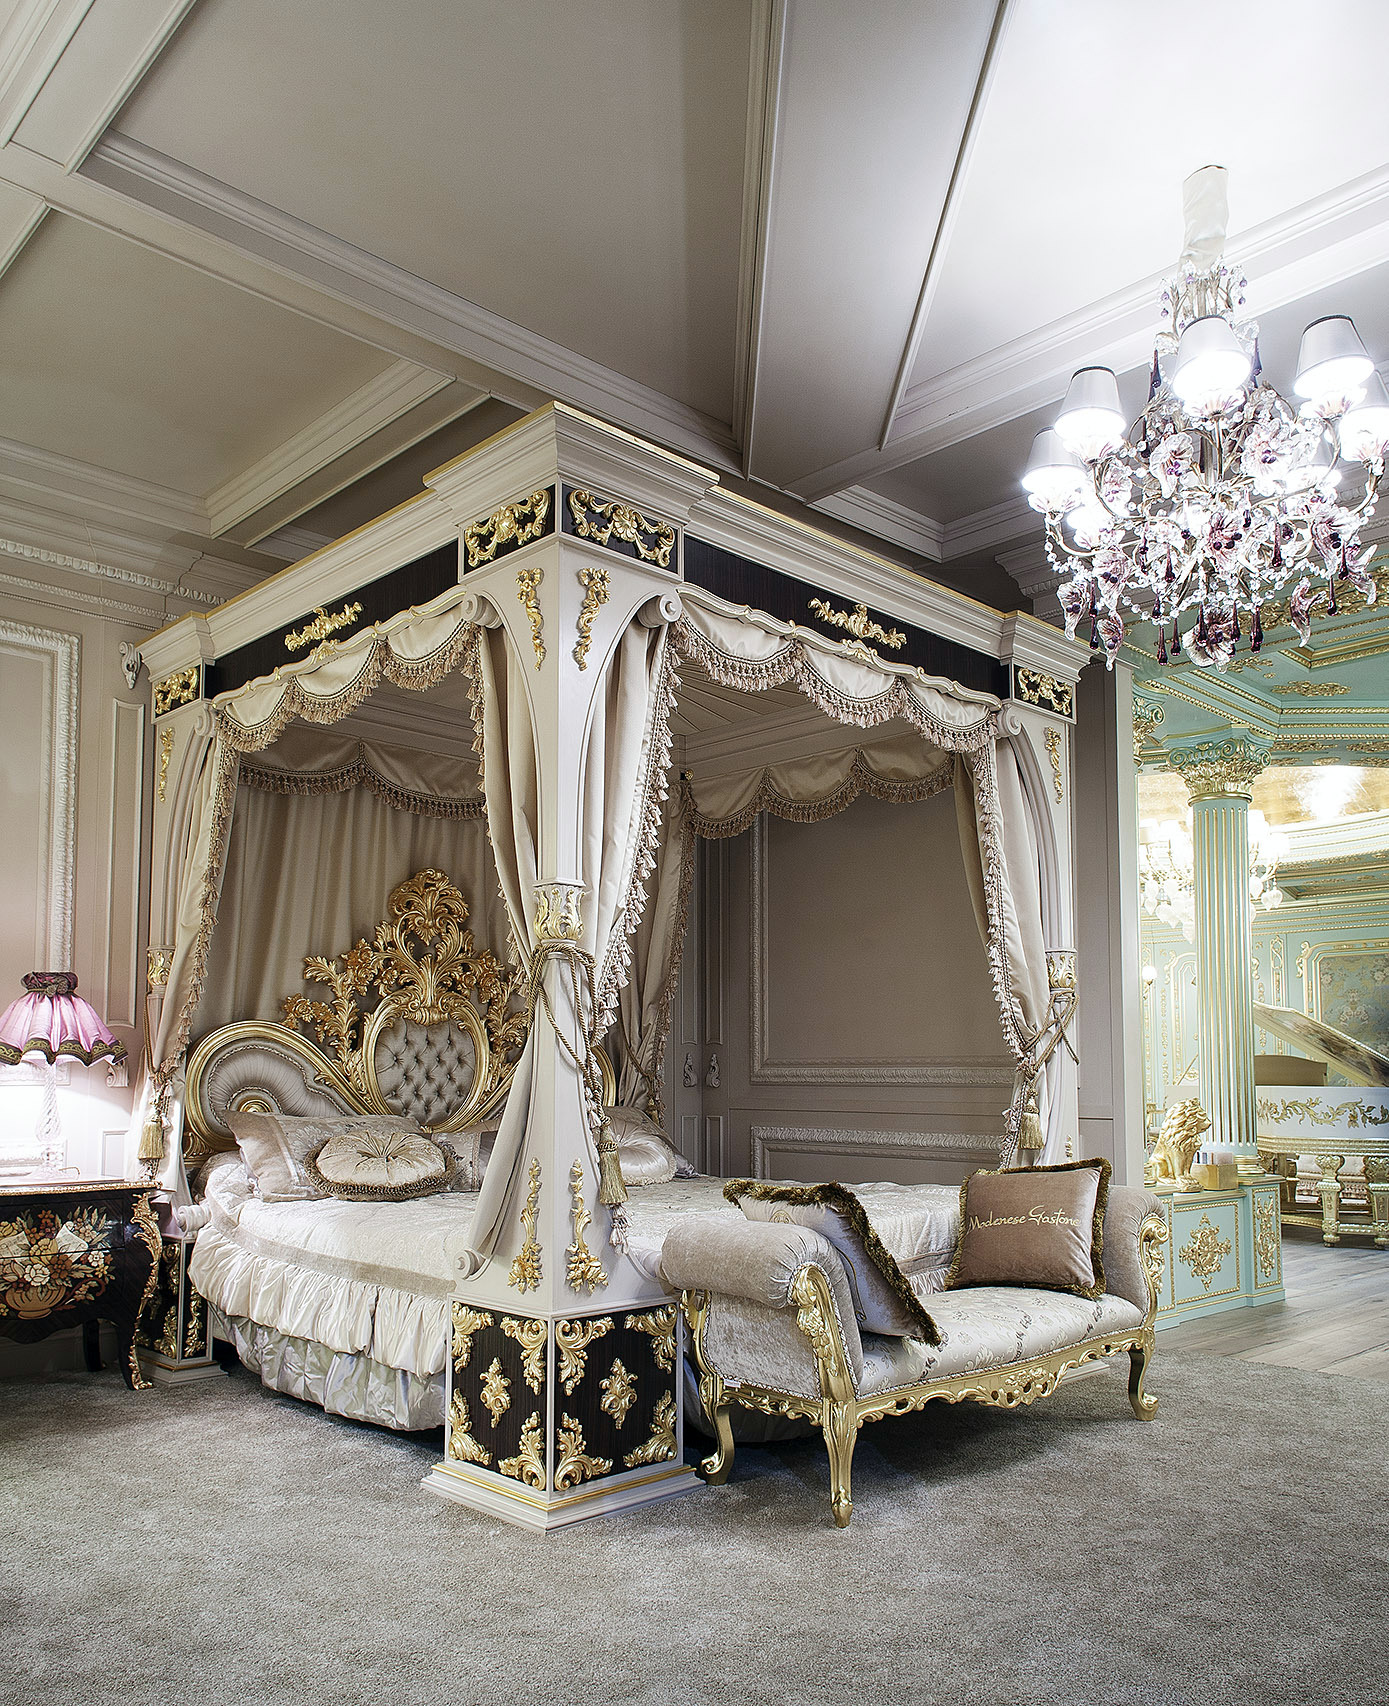 Schlafzimmer Italienischer Stil Luxury Classic Bedroom For Royal Family Classic Italian